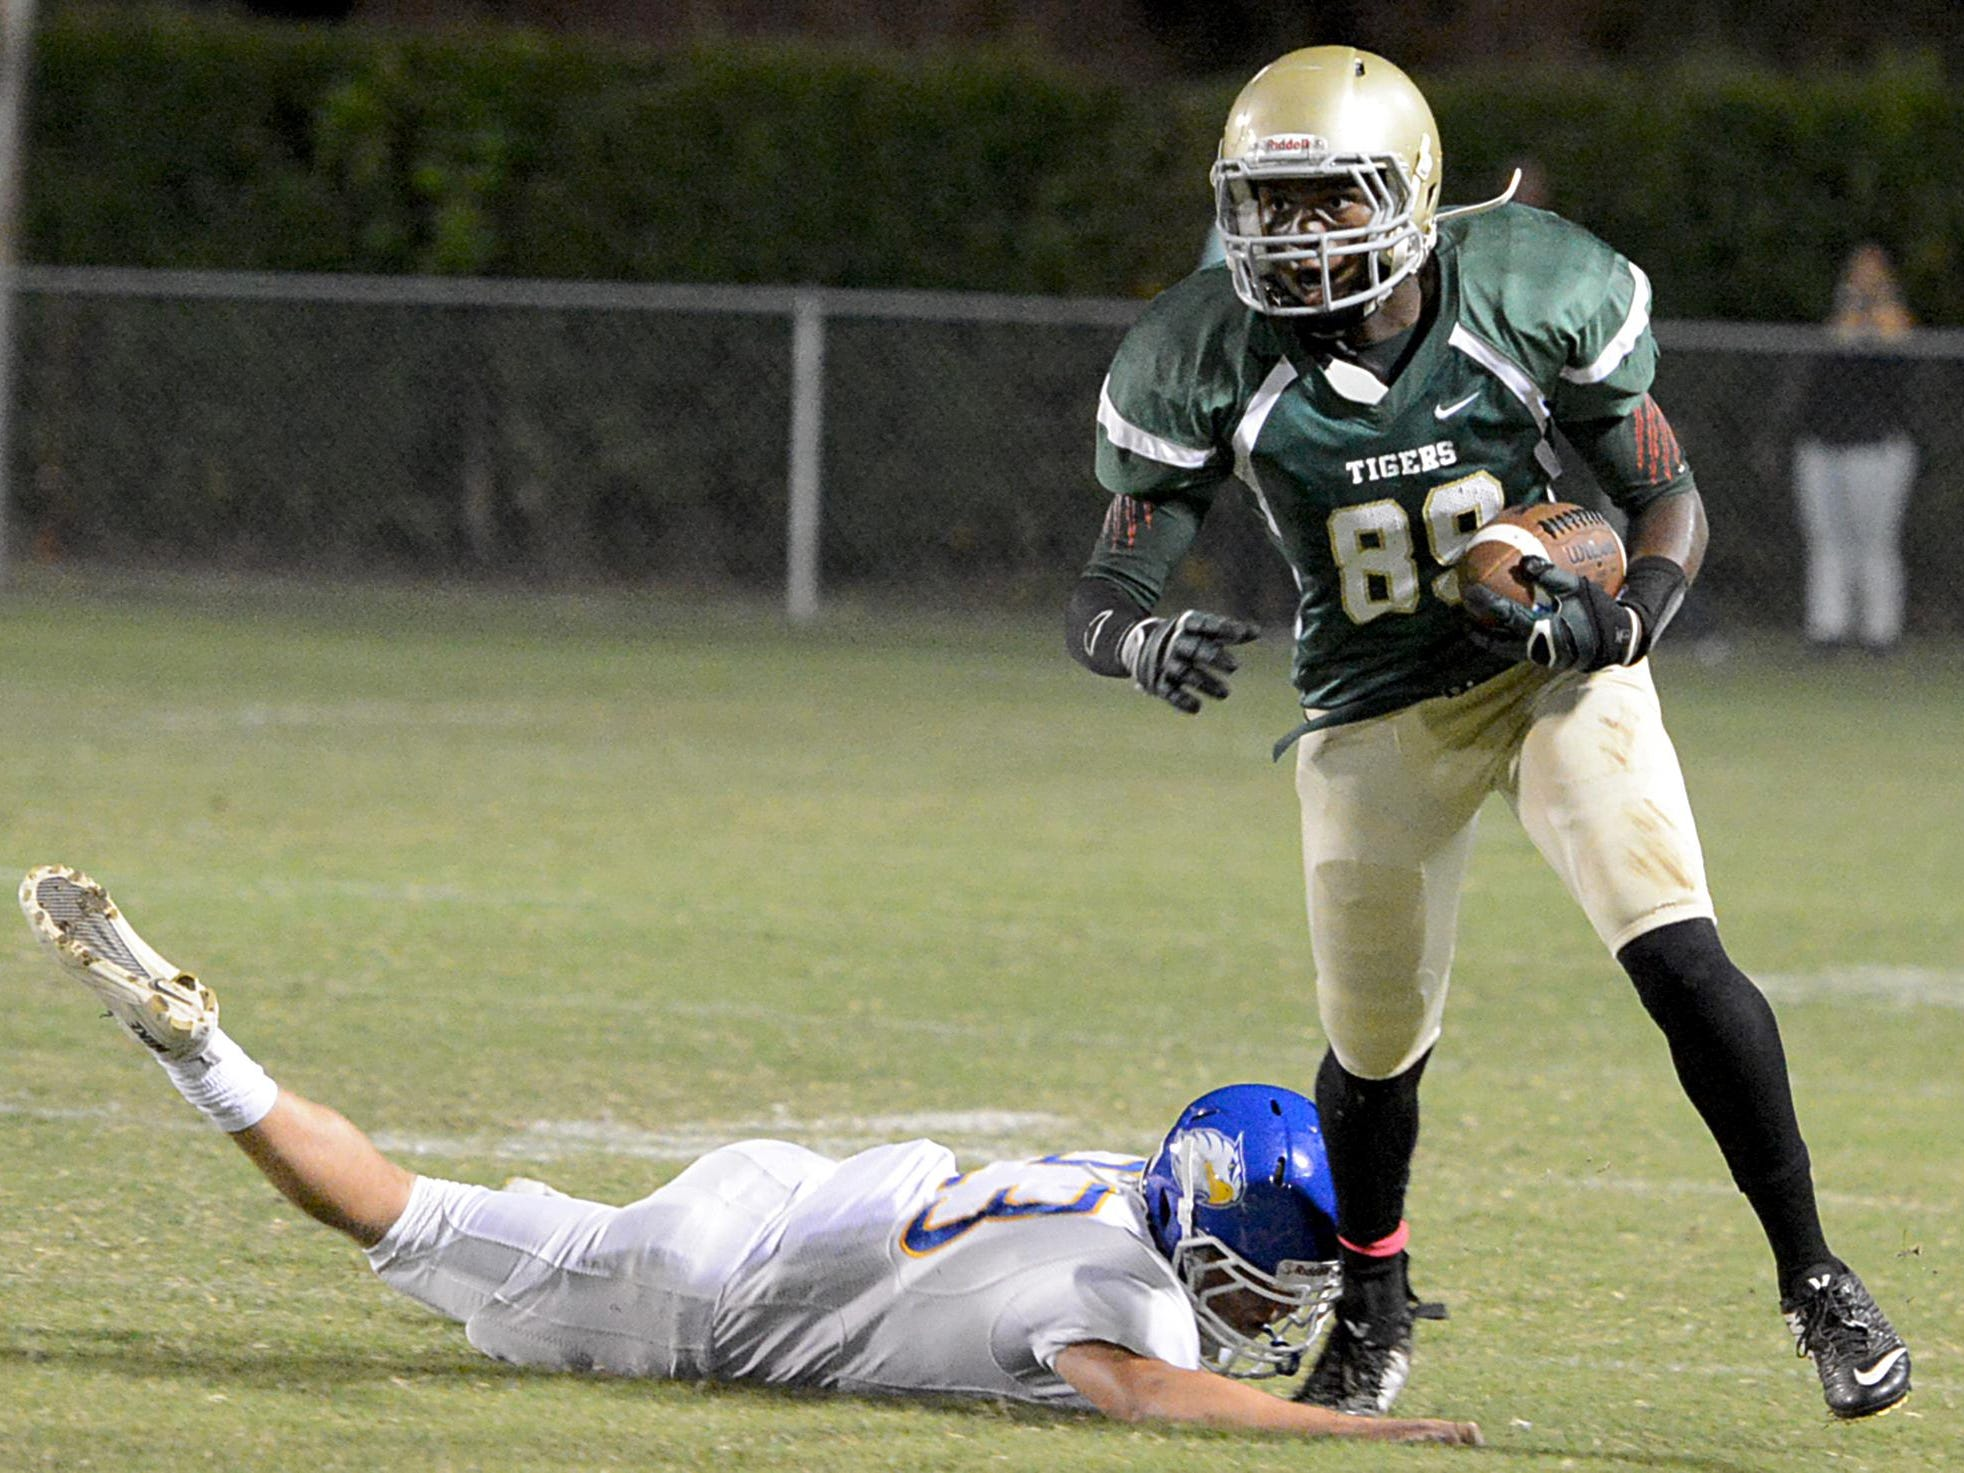 Bolivar's Javonte Crisp avoids a tackle from a Jackson Christian defender in a game last season.